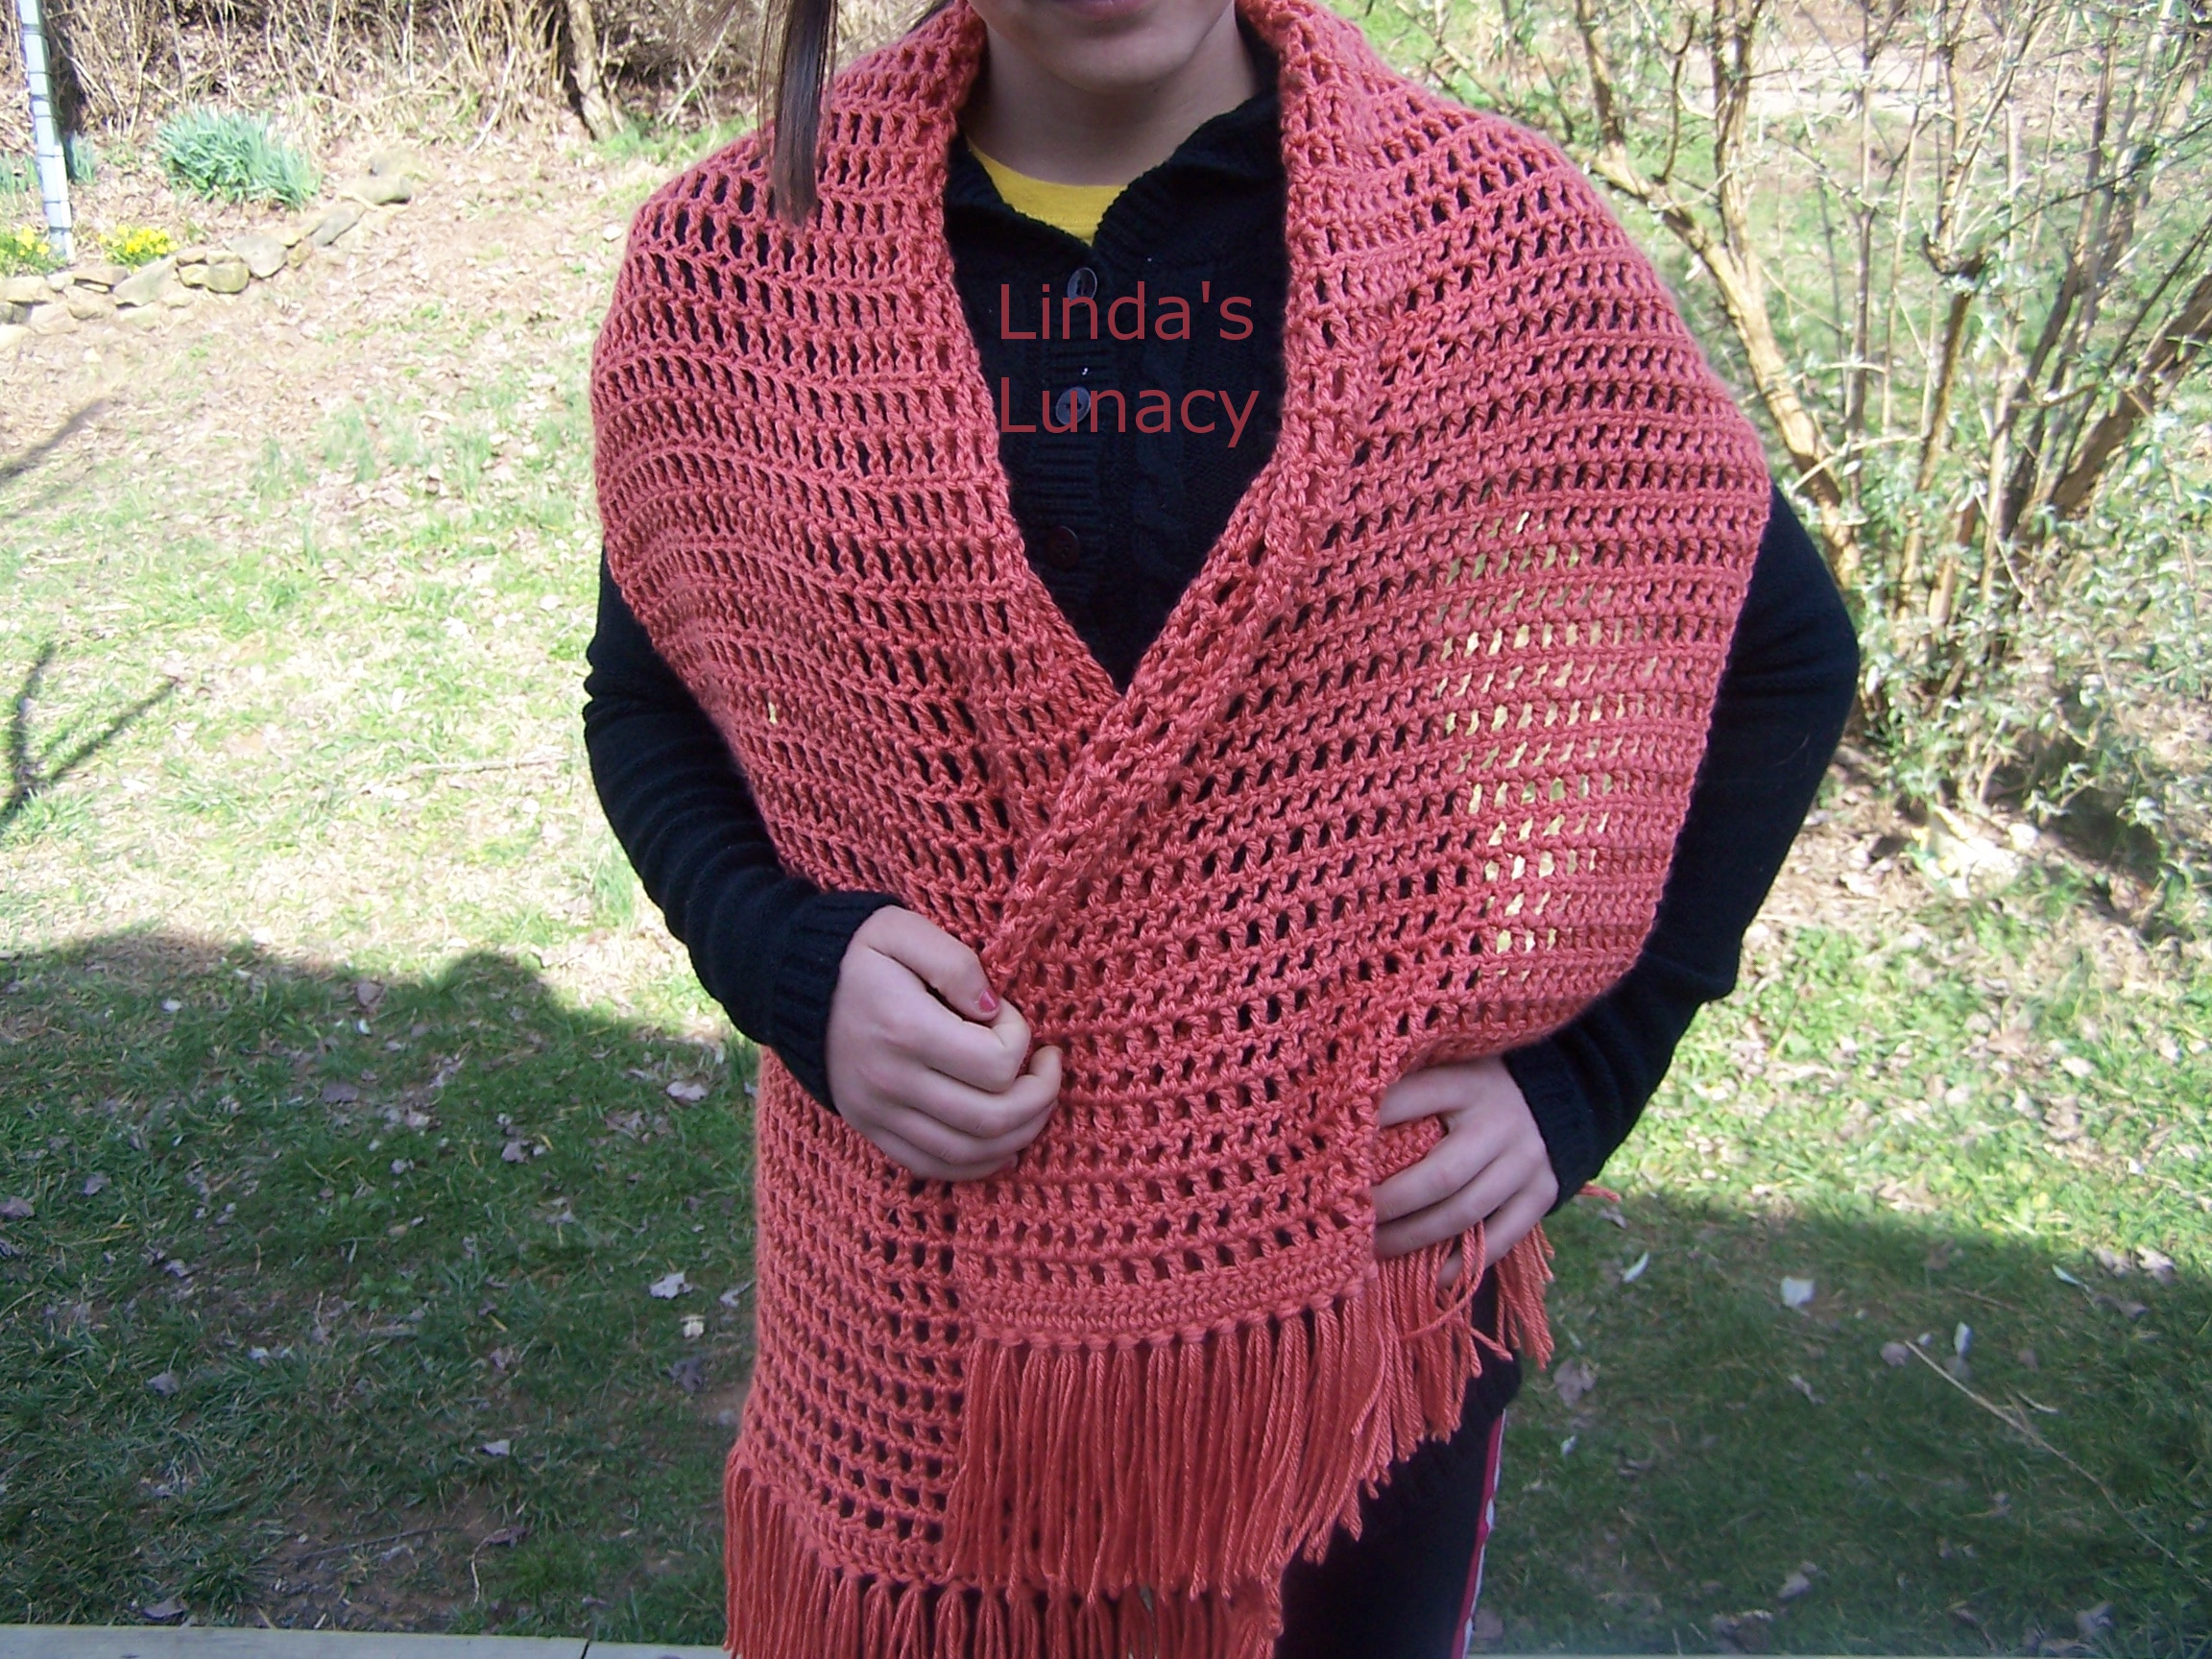 Crocheted Prayer Shawl - Linda's Lunacy